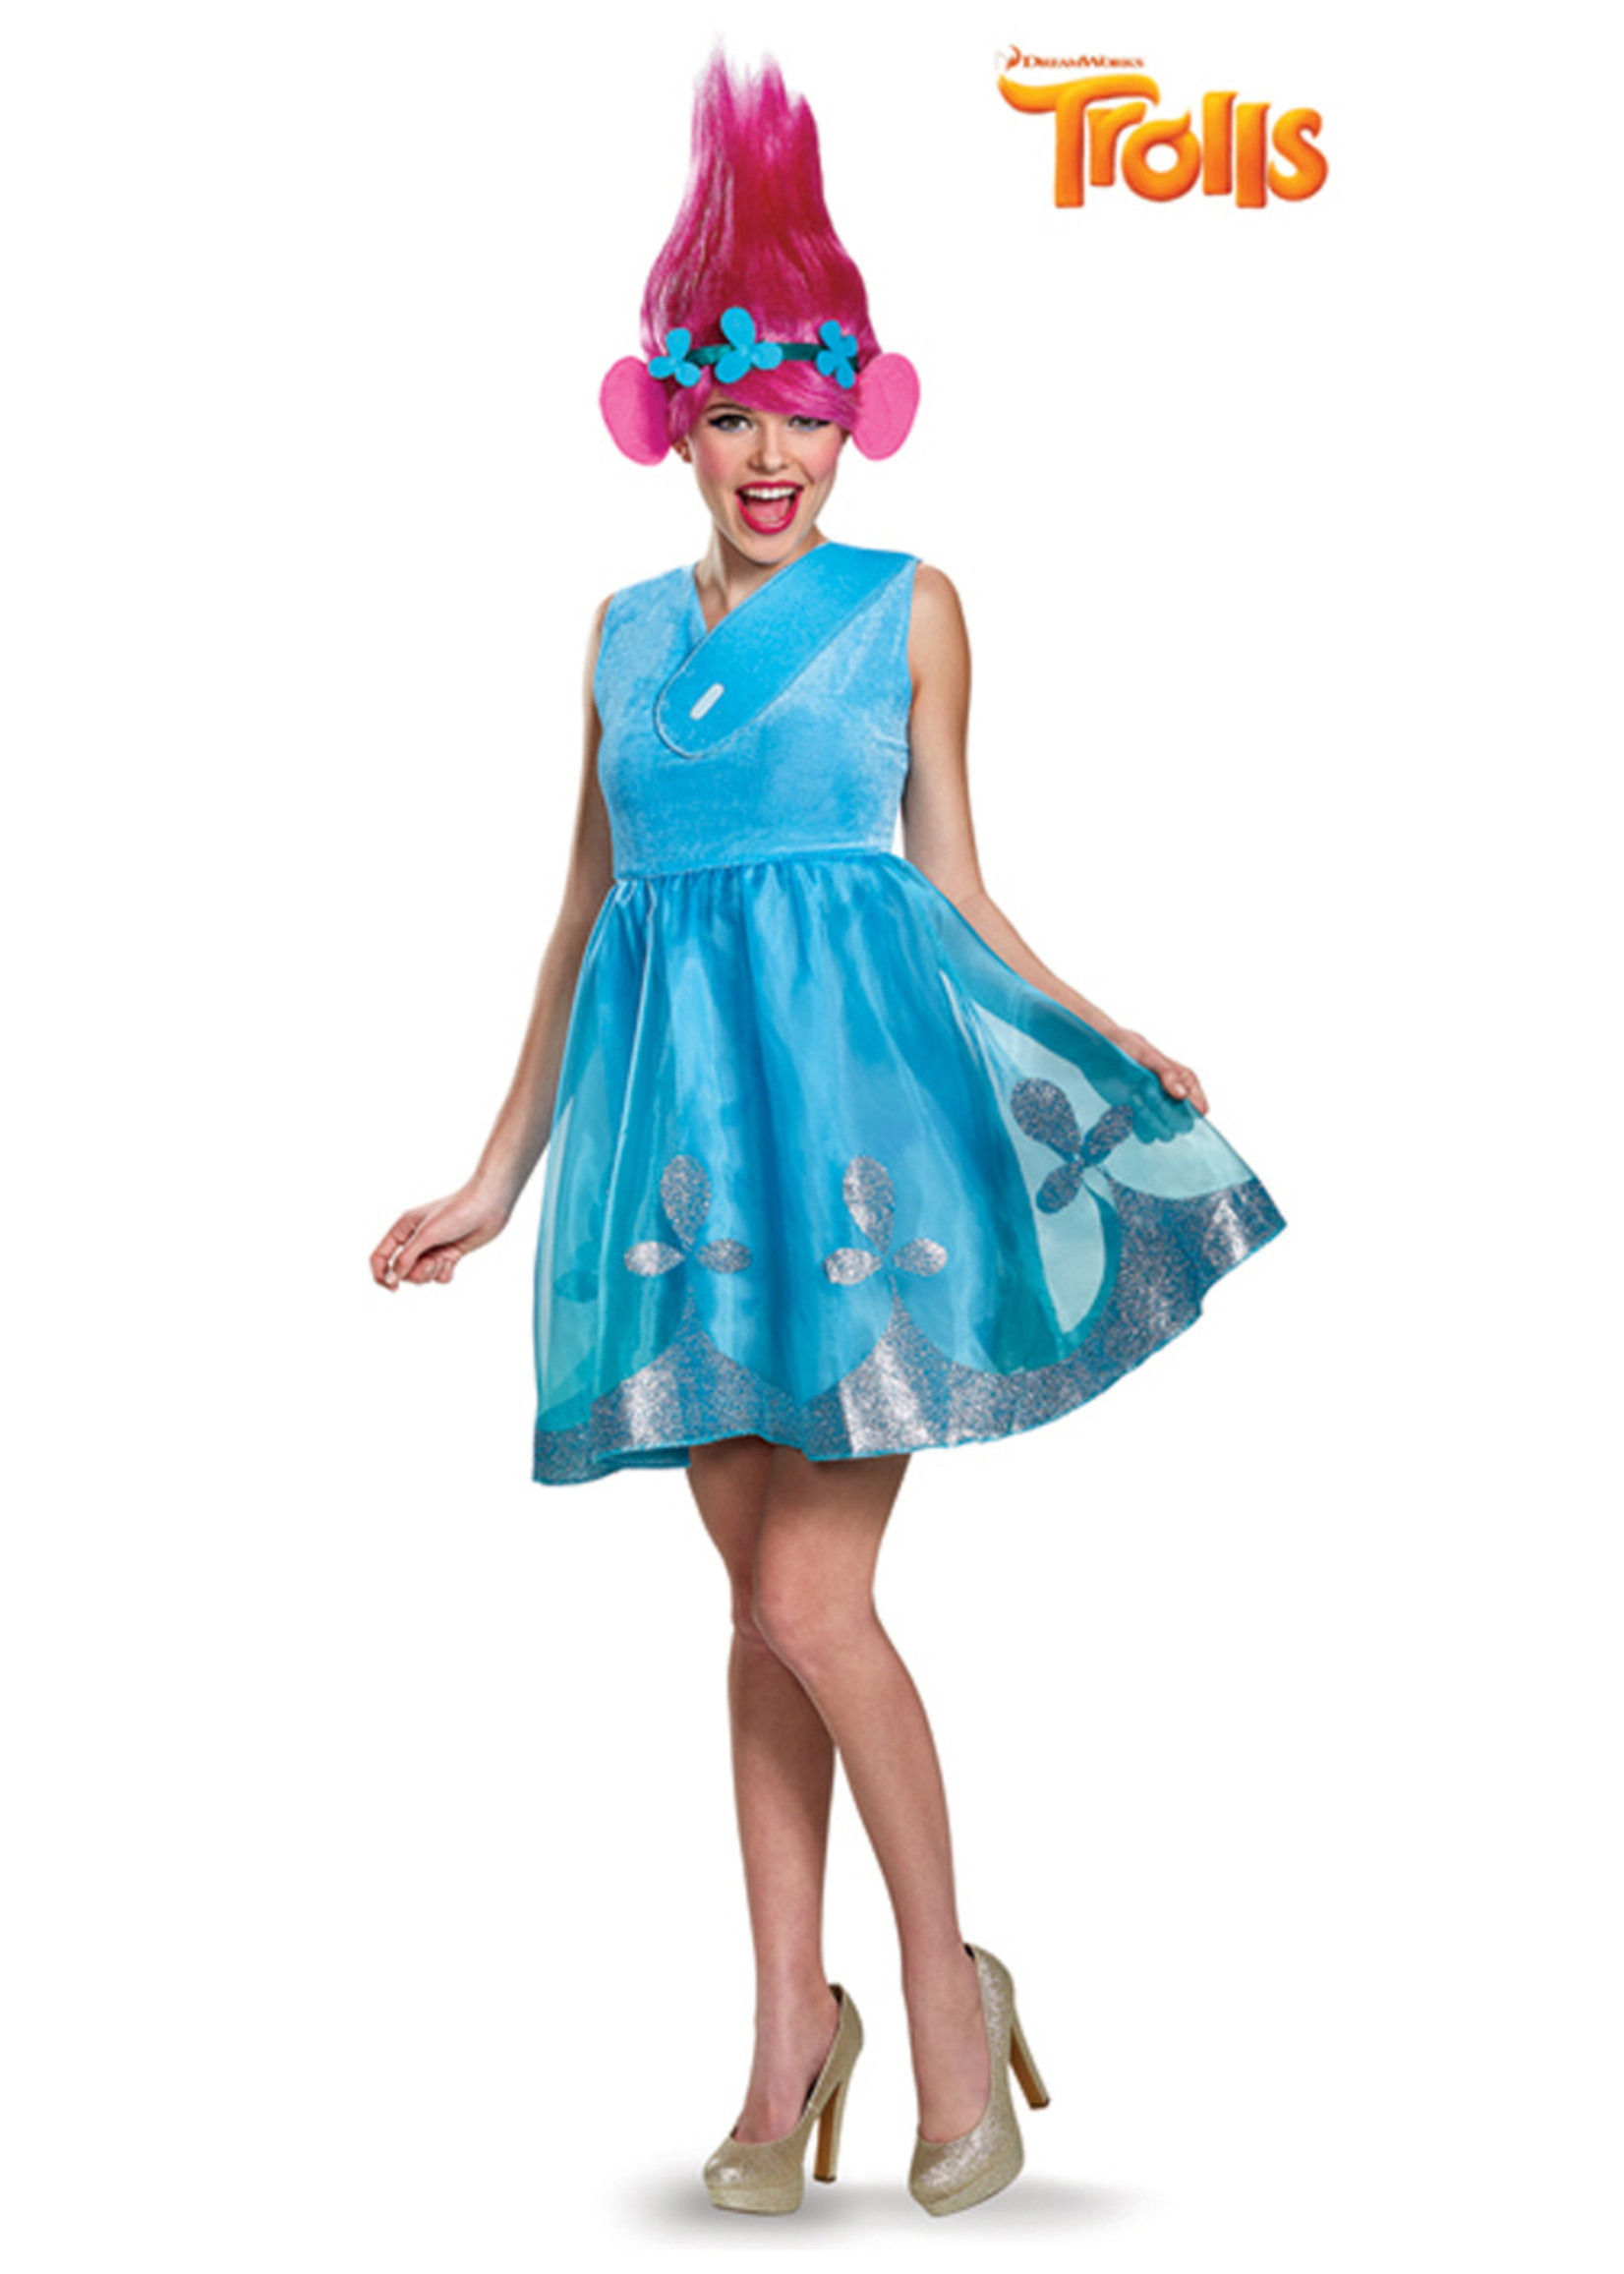 Poppy - Trolls Costume - Women's